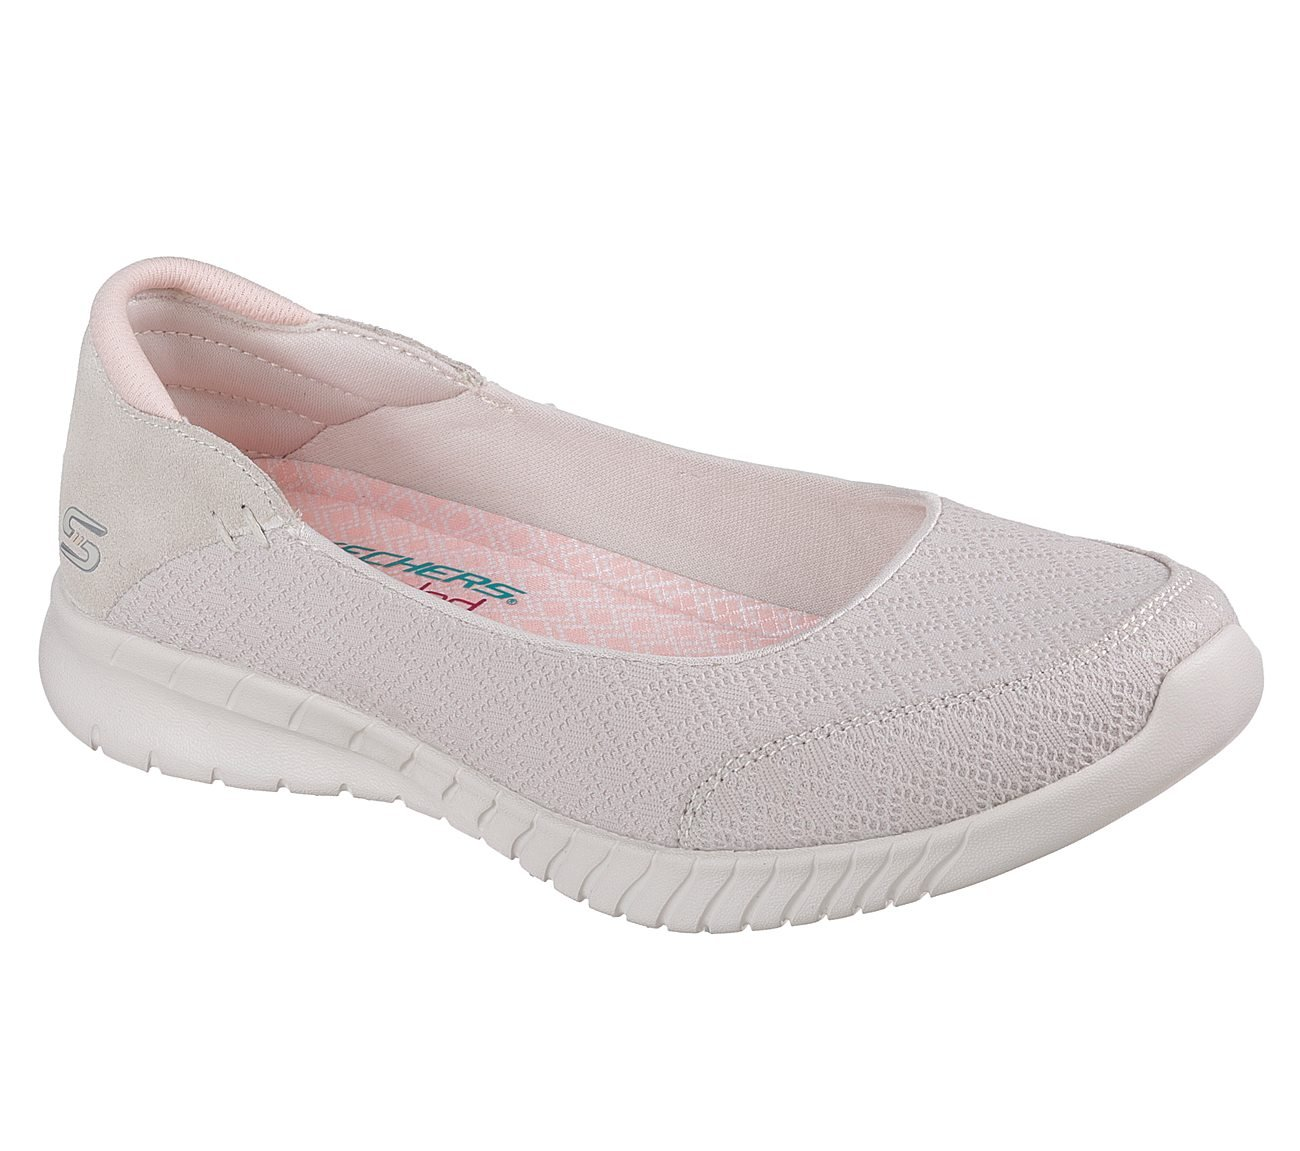 Skechers Wave Lite Don't Mention It Womens Slip On Skimmer Sneakers B07DFNJ3N7 10 B(M) US|Natural/Coral